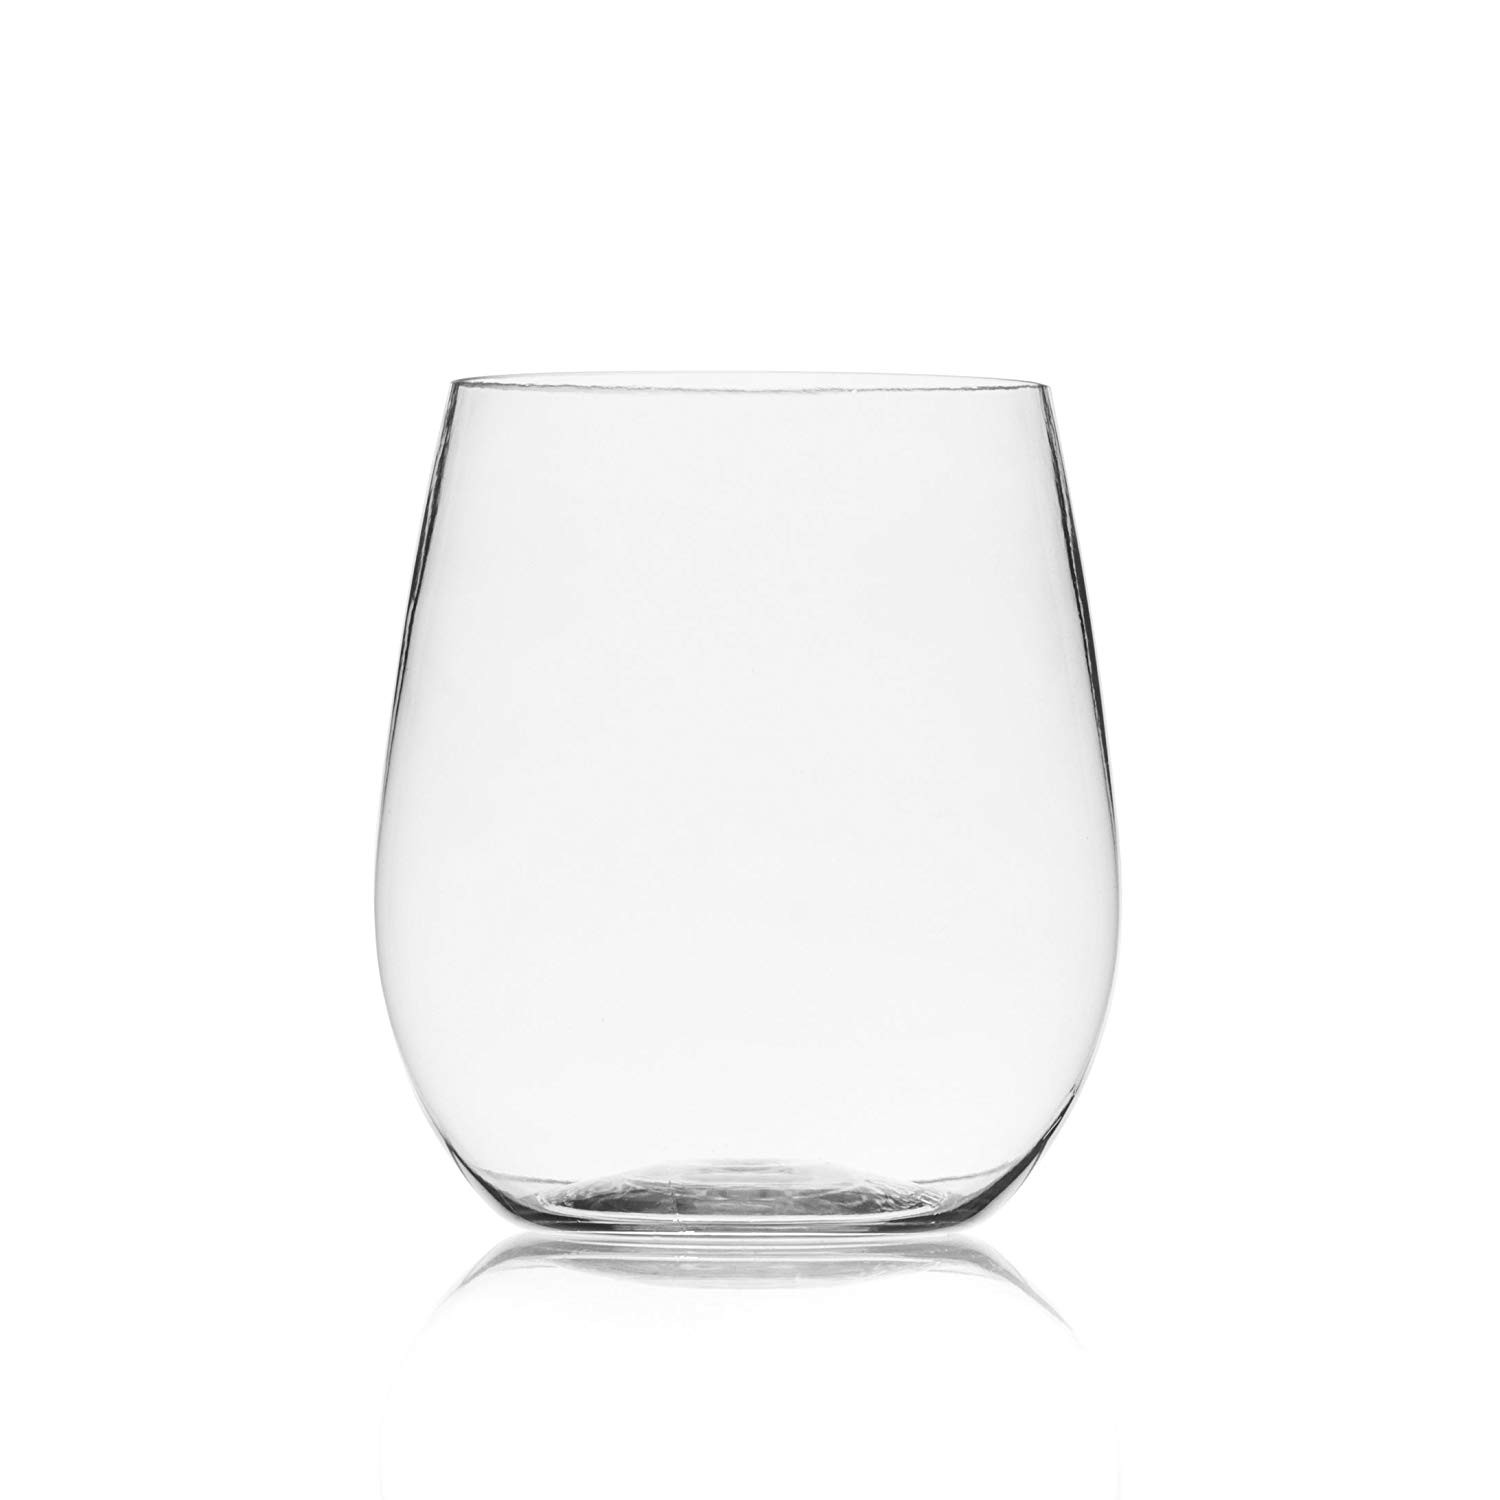 18 inch vases in bulk of amazon com berevino plastic wine glasses stemless wine cup 12 throughout amazon com berevino plastic wine glasses stemless wine cup 12 ounce set of 48 clear plastic unbreakable wine glasses disposable reusable shatterproof